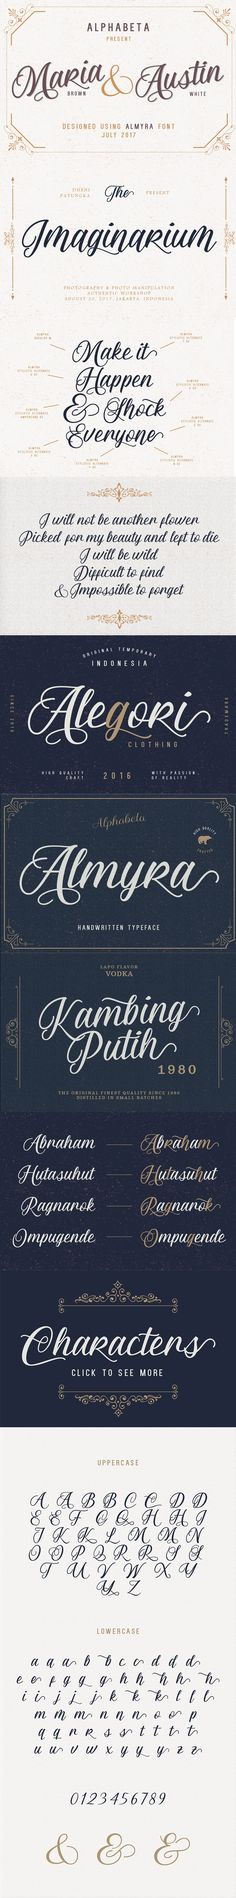 #Freebies : Almyra Script - This sexy #font was inspired by my friend, from her eyes until her heart. I create this one from her laugh, smile, and passion. Almyra come with beautiful uppercase and lowercase, stylistic set, alternates, multilingual, etc.  I also made a #design, this one is very well for #logotypes, letter, lables, cards, etc ( #Webdesign #branding #freelancers #designer #graphics #print #photography #travel #typography #lettering #typeface )